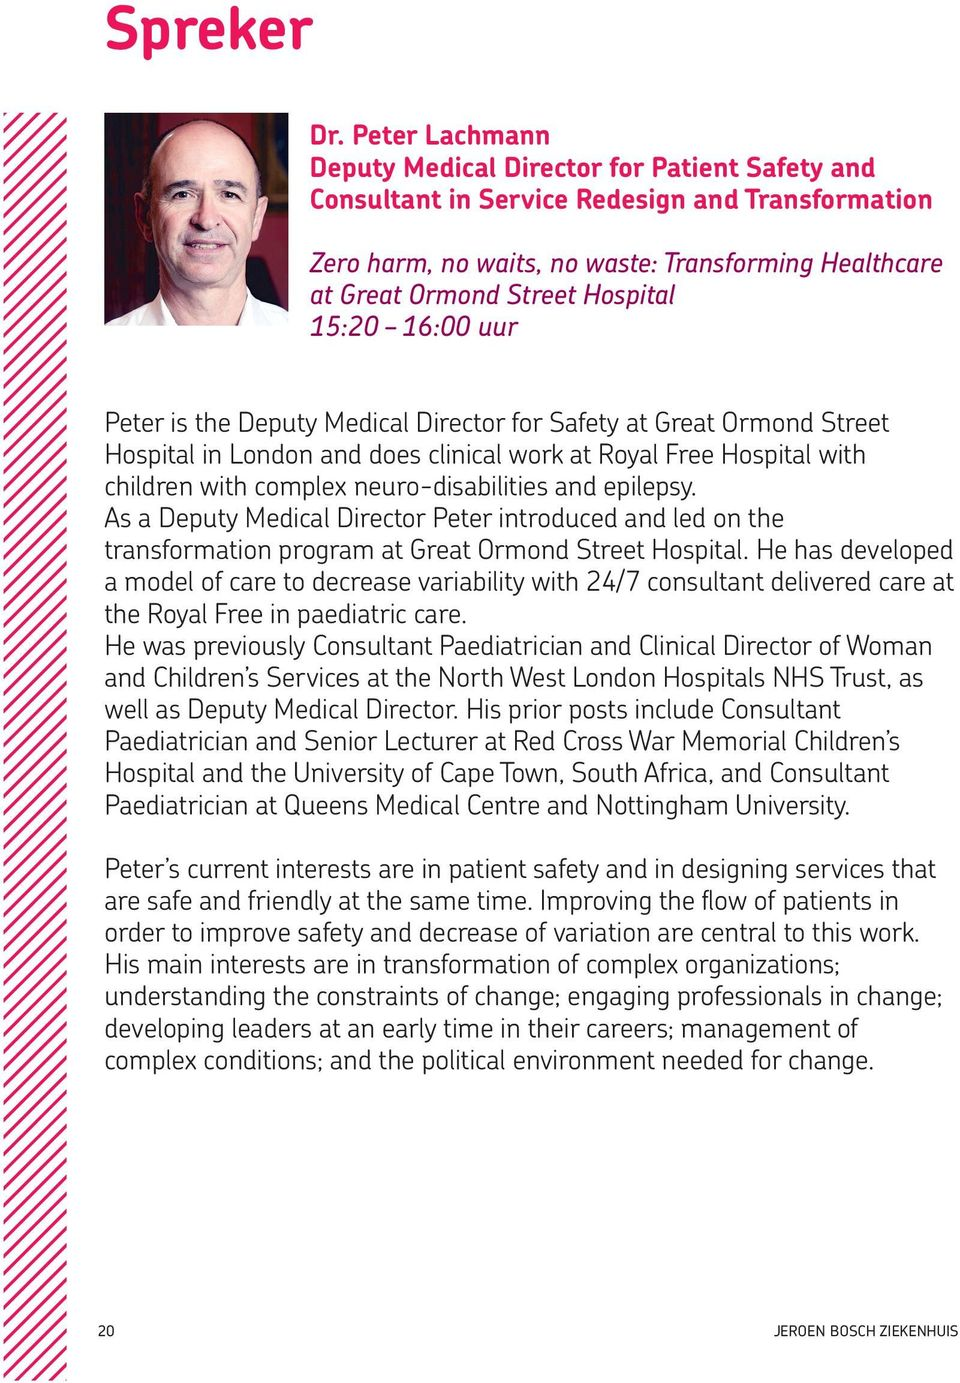 15:20 16:00 uur Peter is the Deputy Medical Director for Safety at Great Ormond Street Hospital in London and does clinical work at Royal Free Hospital with children with complex neuro-disabilities